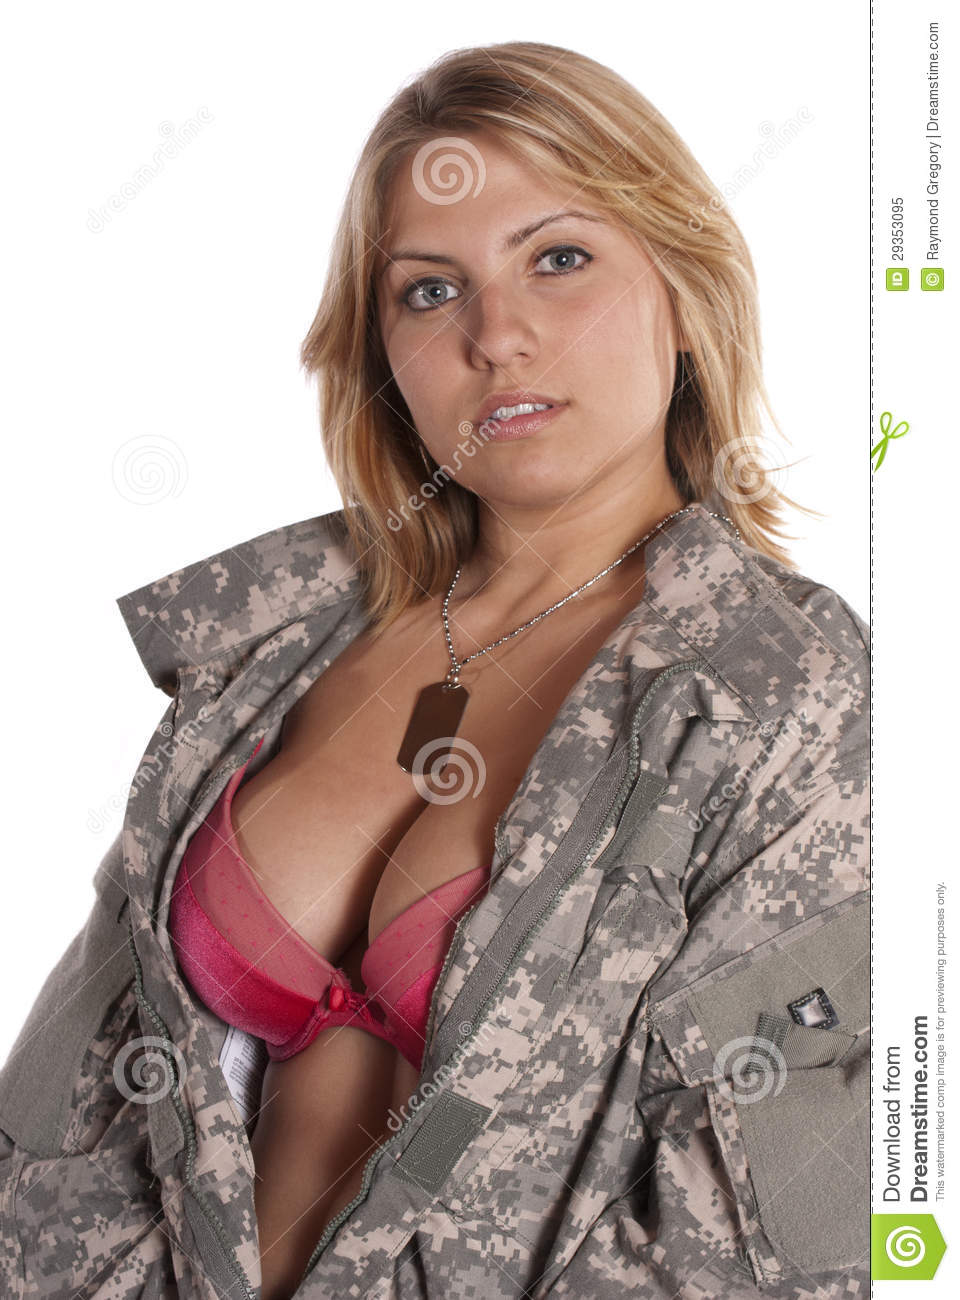 Nude women in uniform